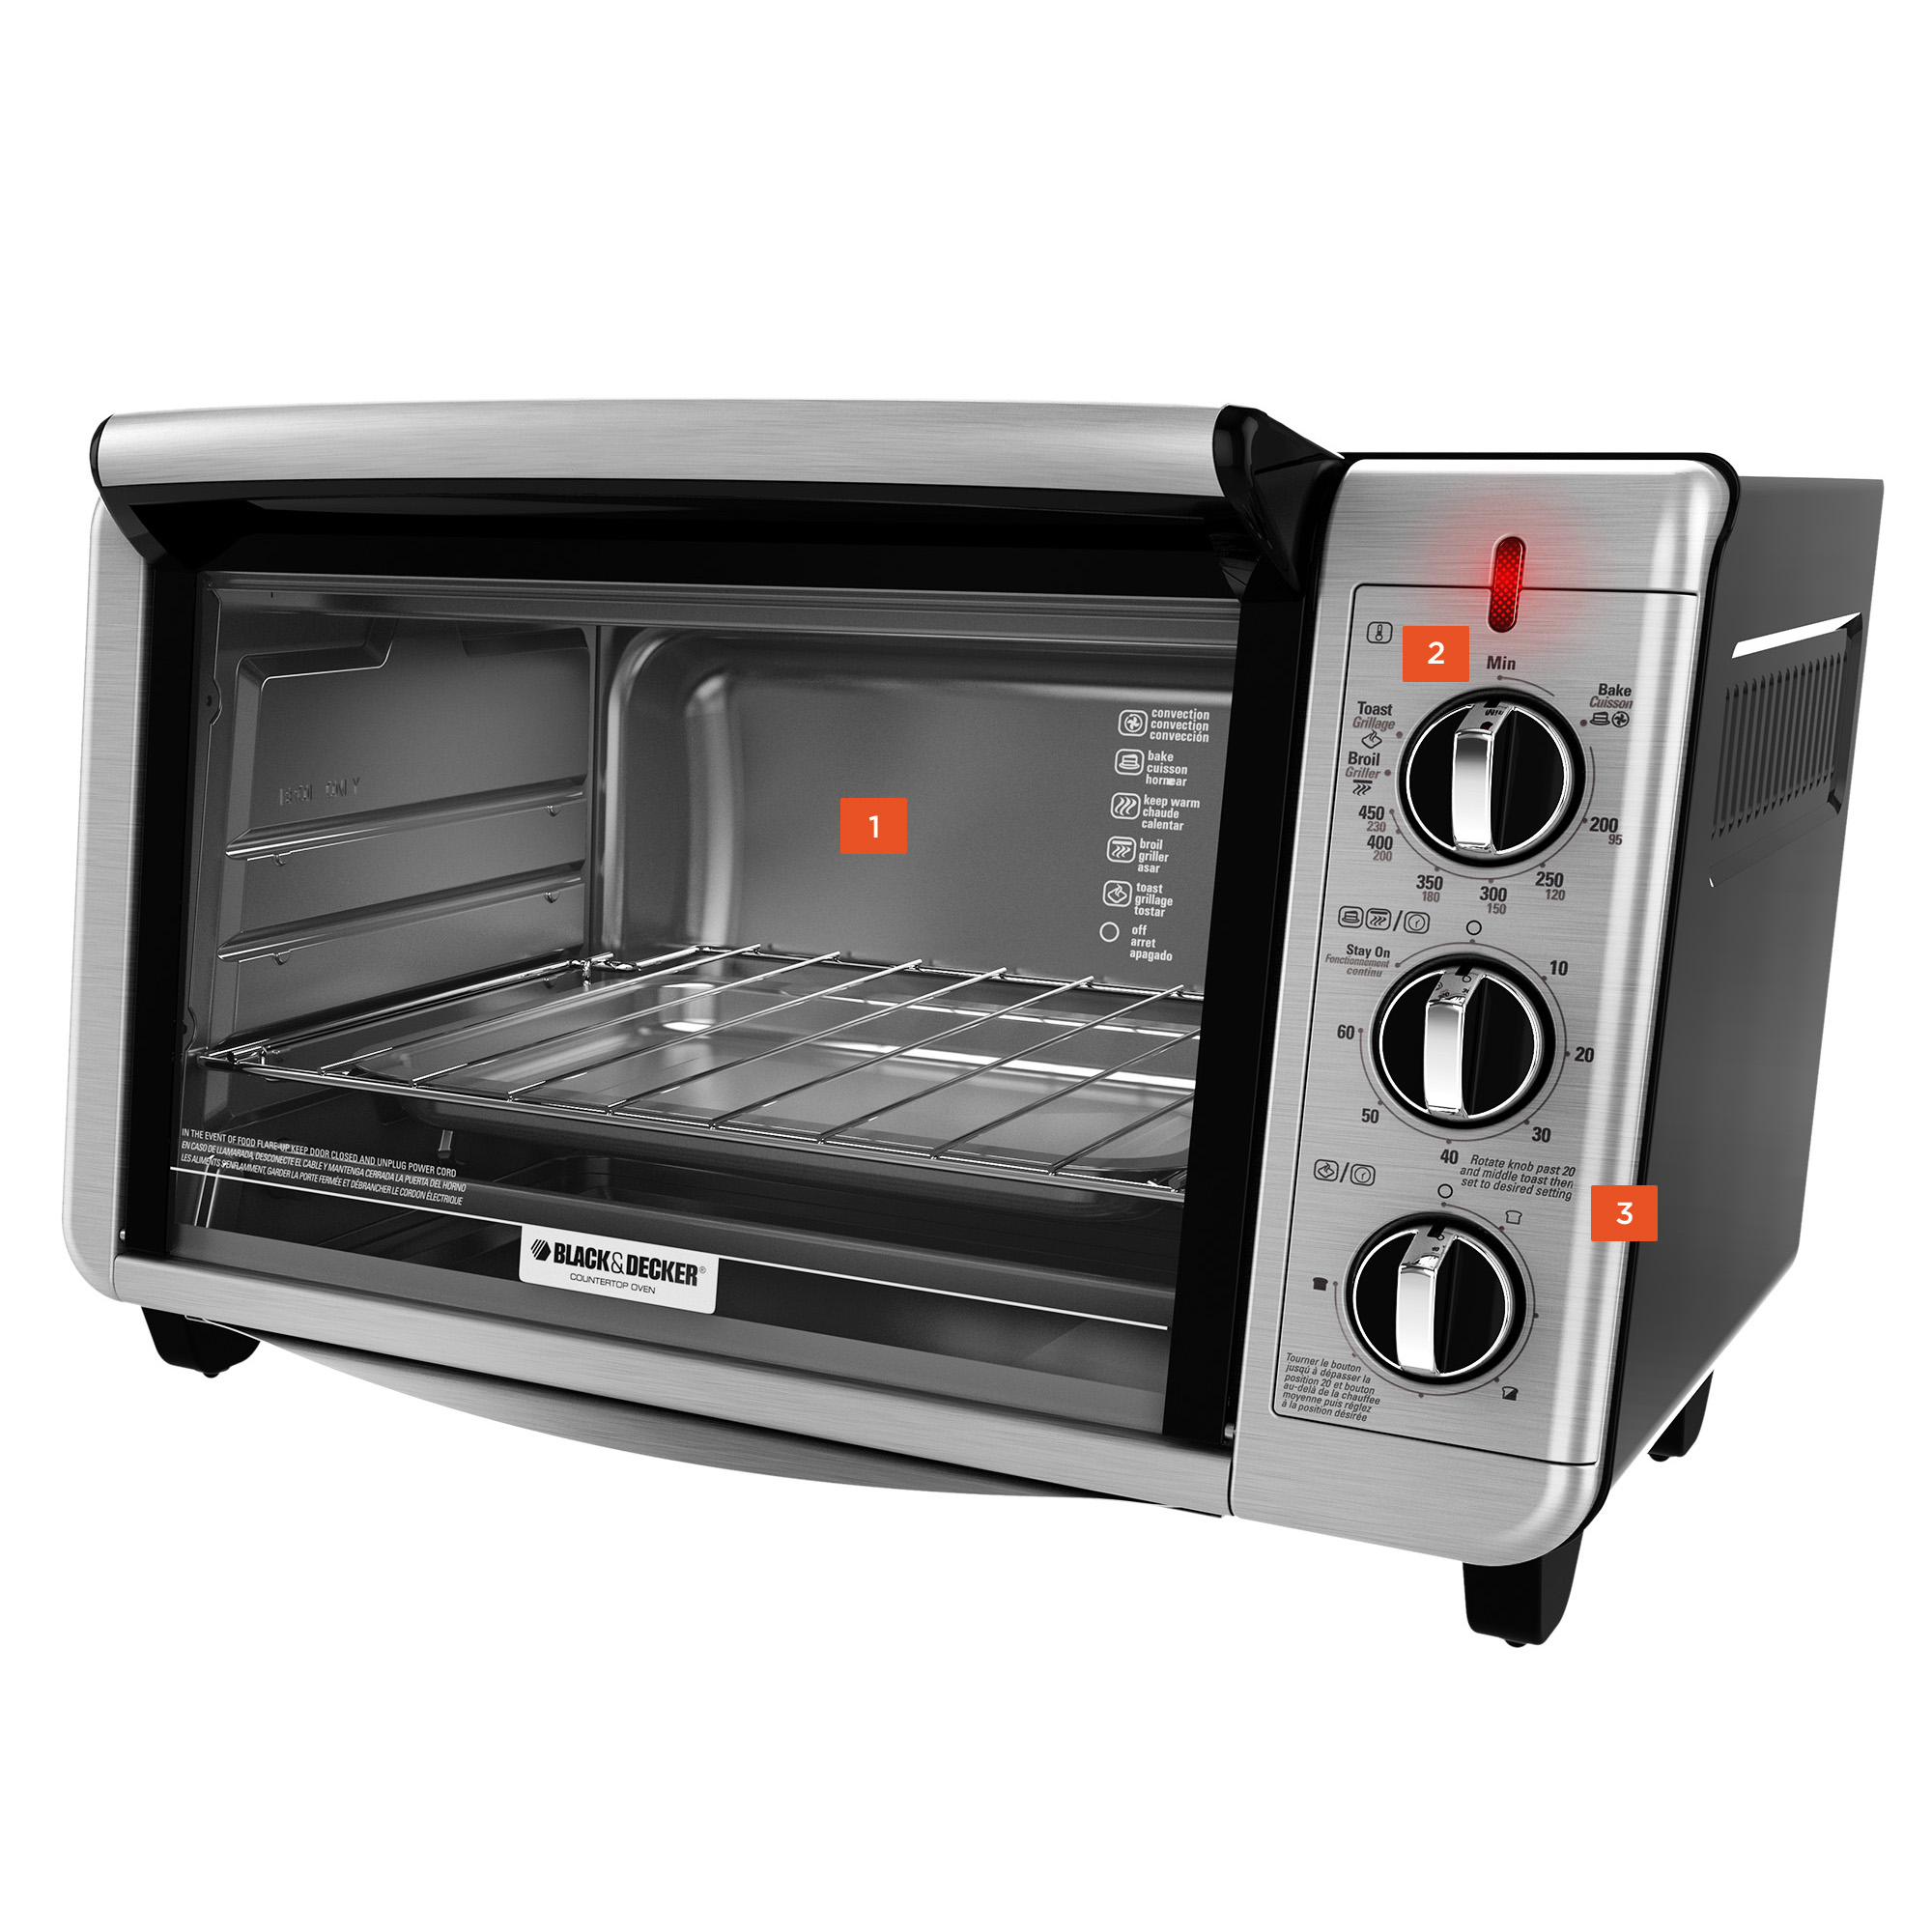 6 slice convection countertop toaster oven black decker rh blackanddeckerappliances com black & decker toaster oven instruction manual black decker toaster oven owner's manual